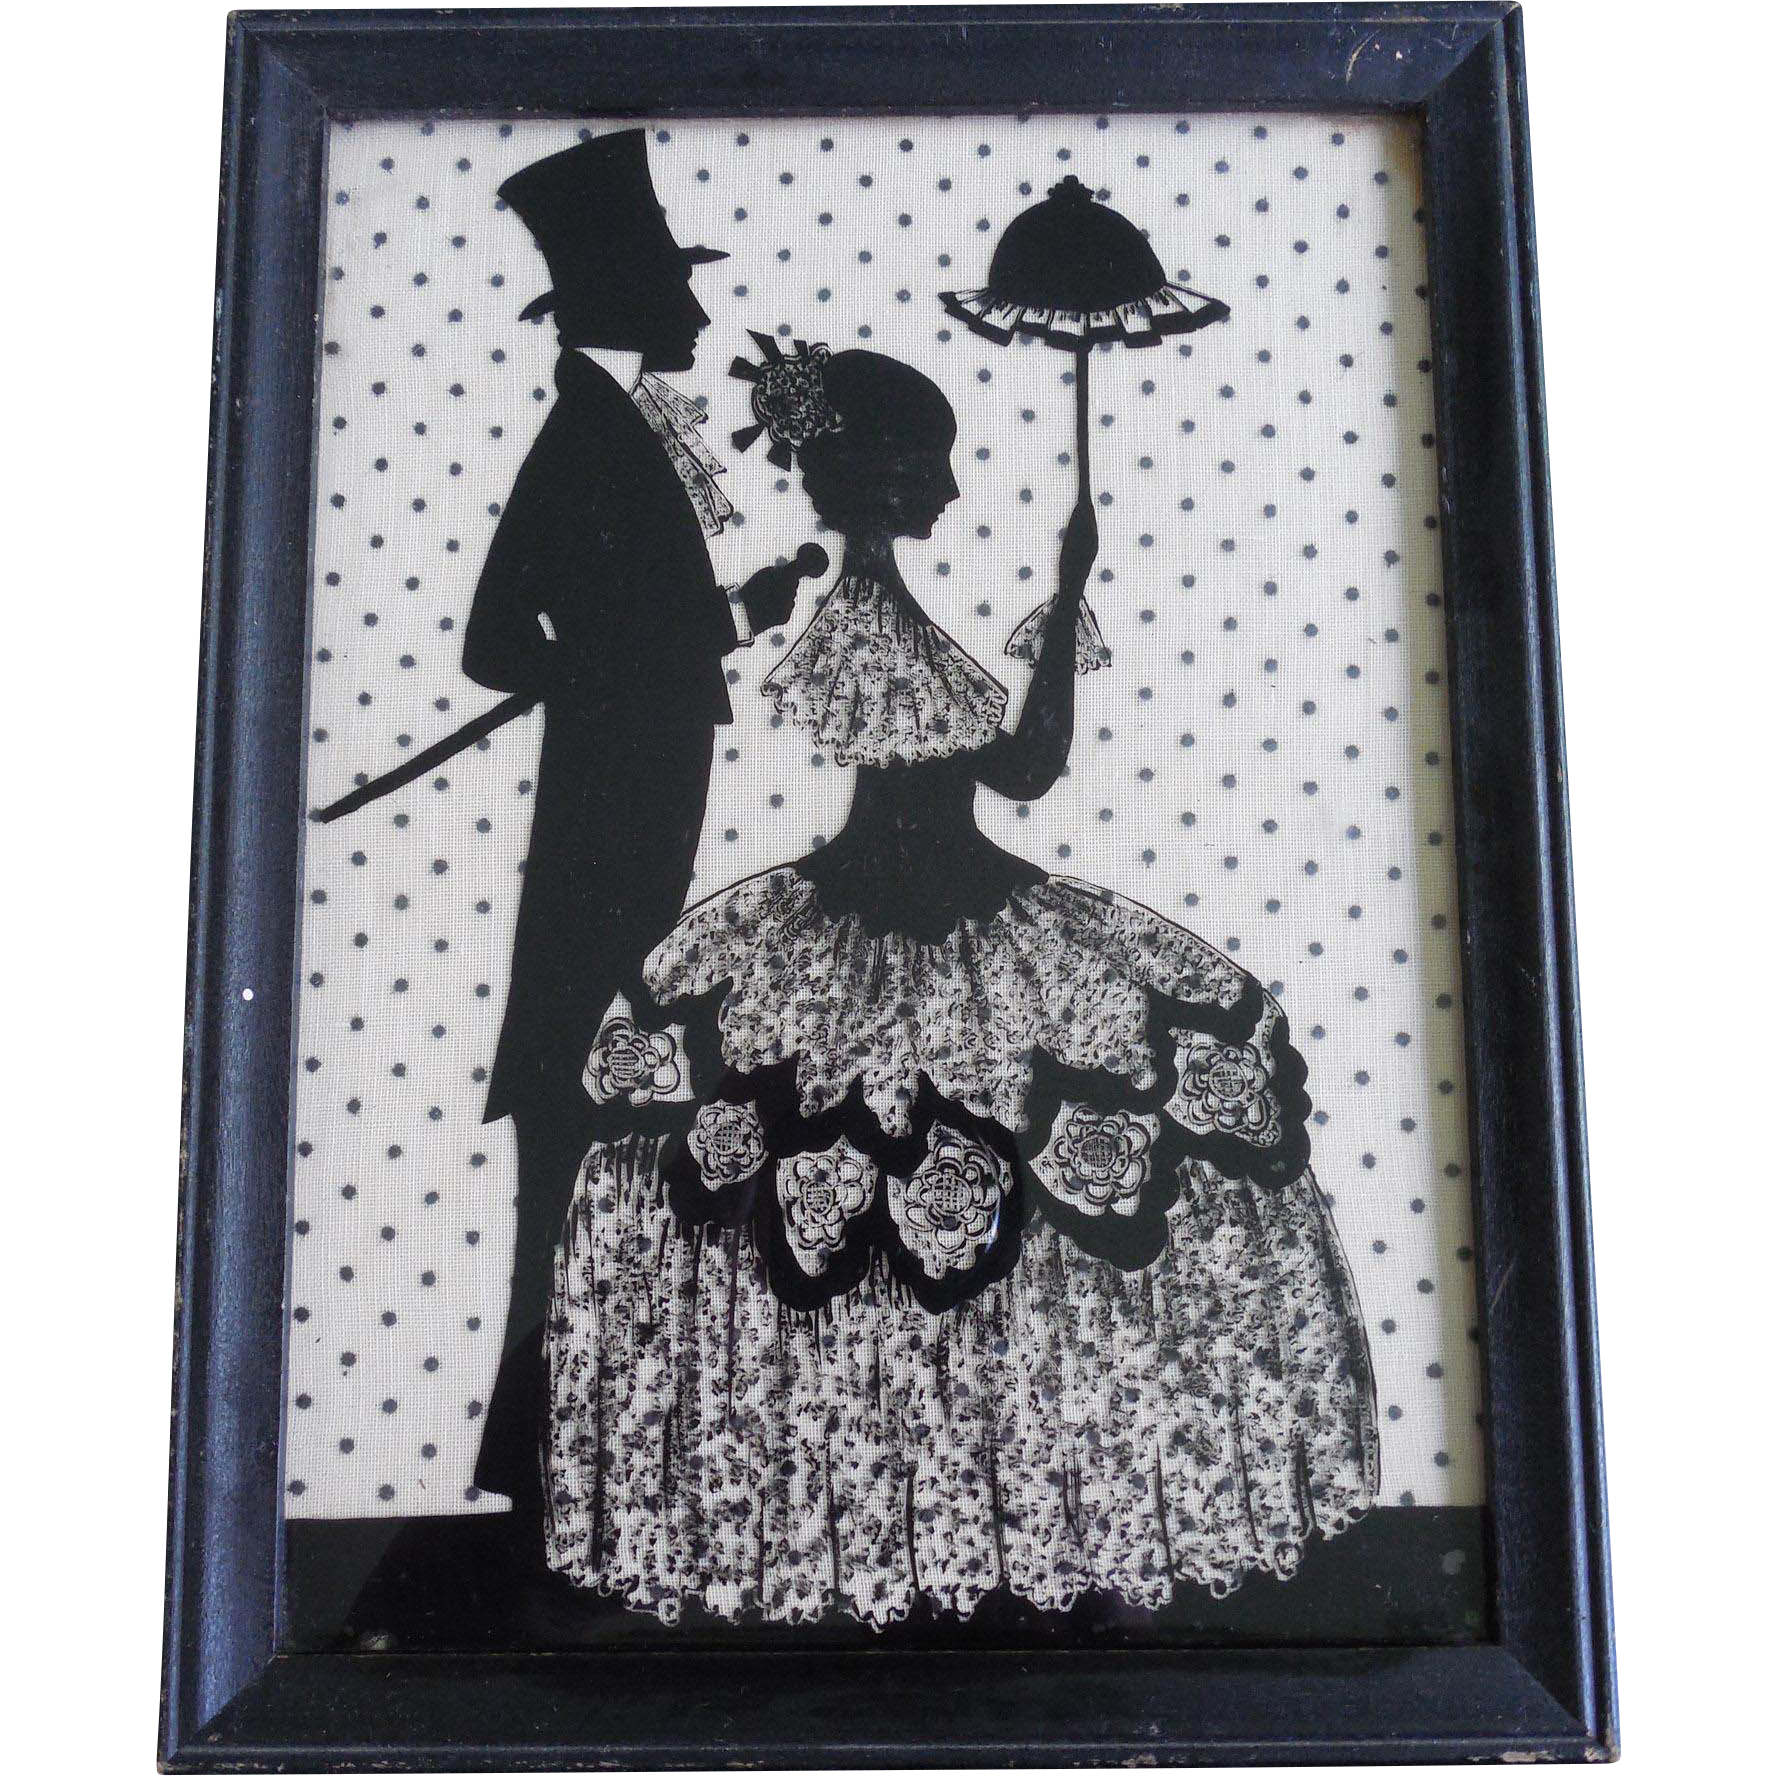 Vintage Silhouette Titled Morning Stroll Against Polka Dot Fabric Background Lace Top Hat Cane & Parasol